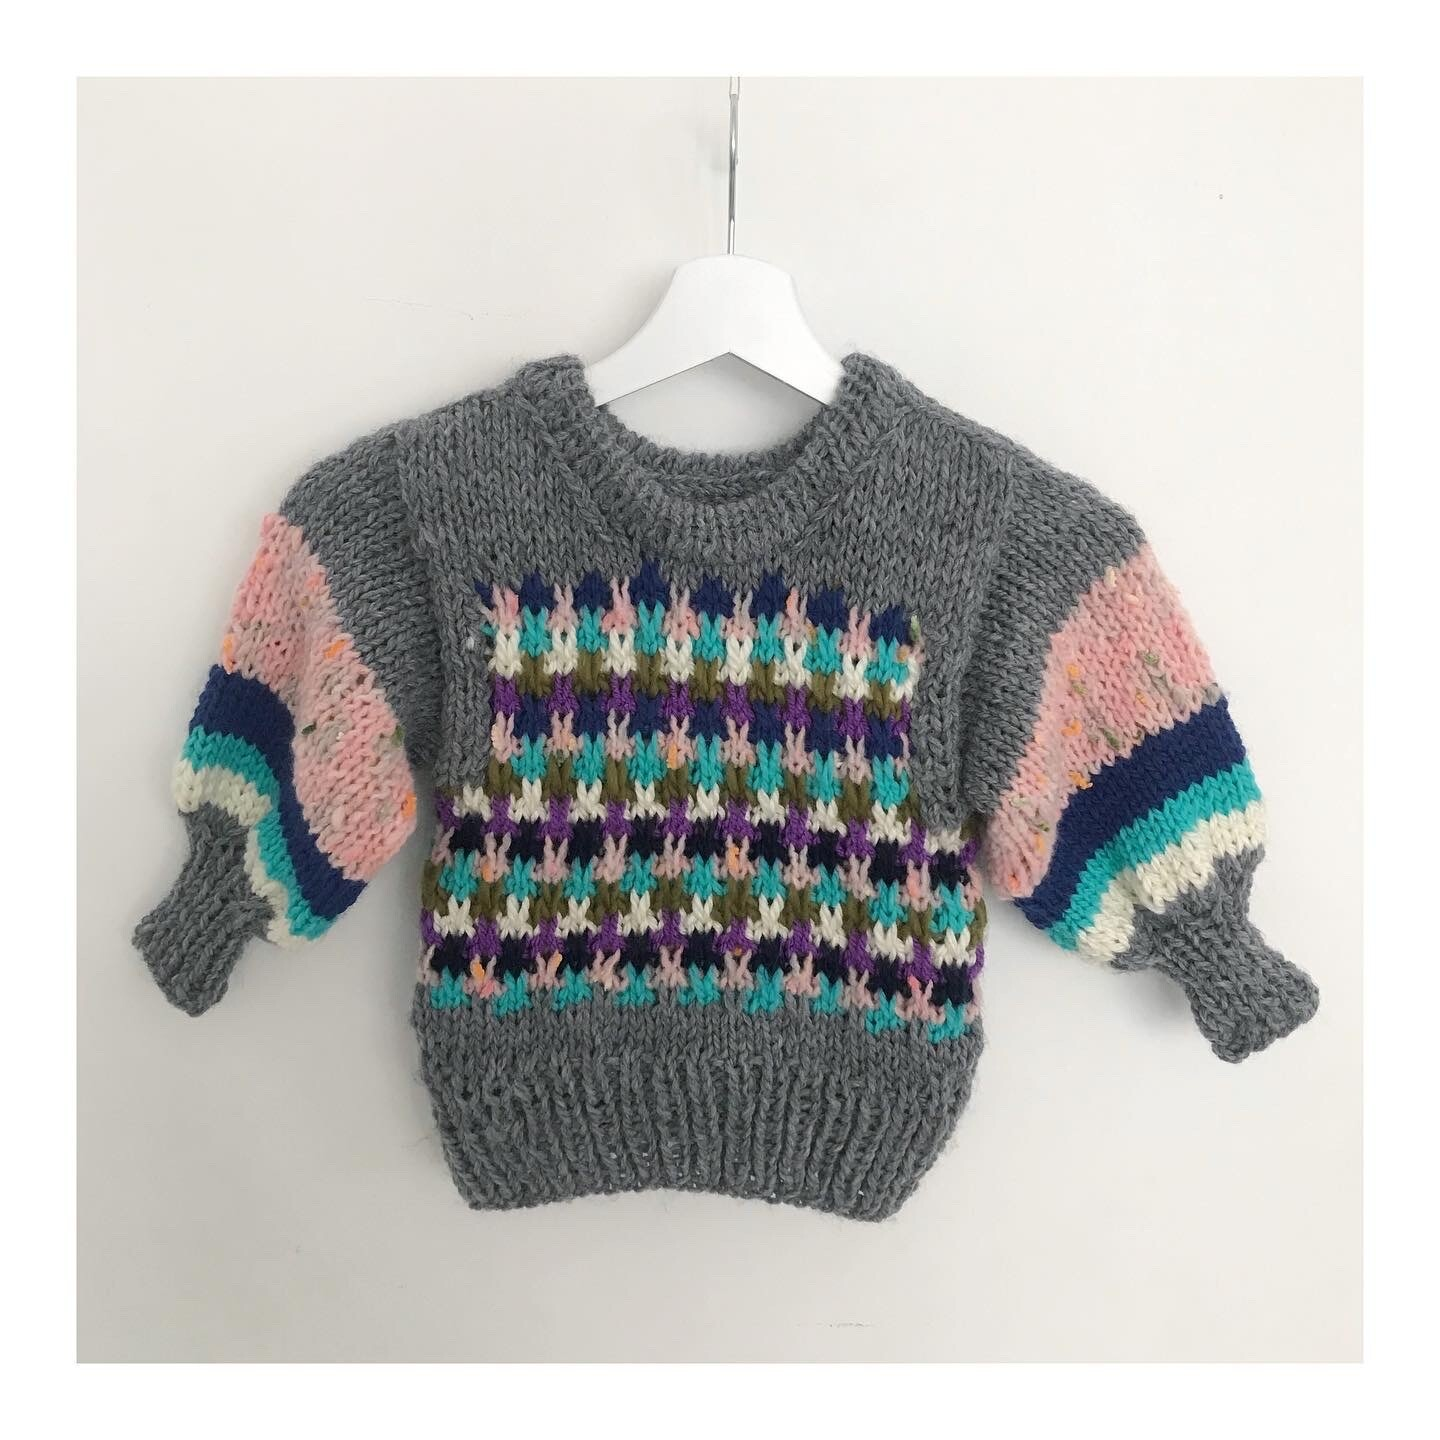 The Manka Sweater